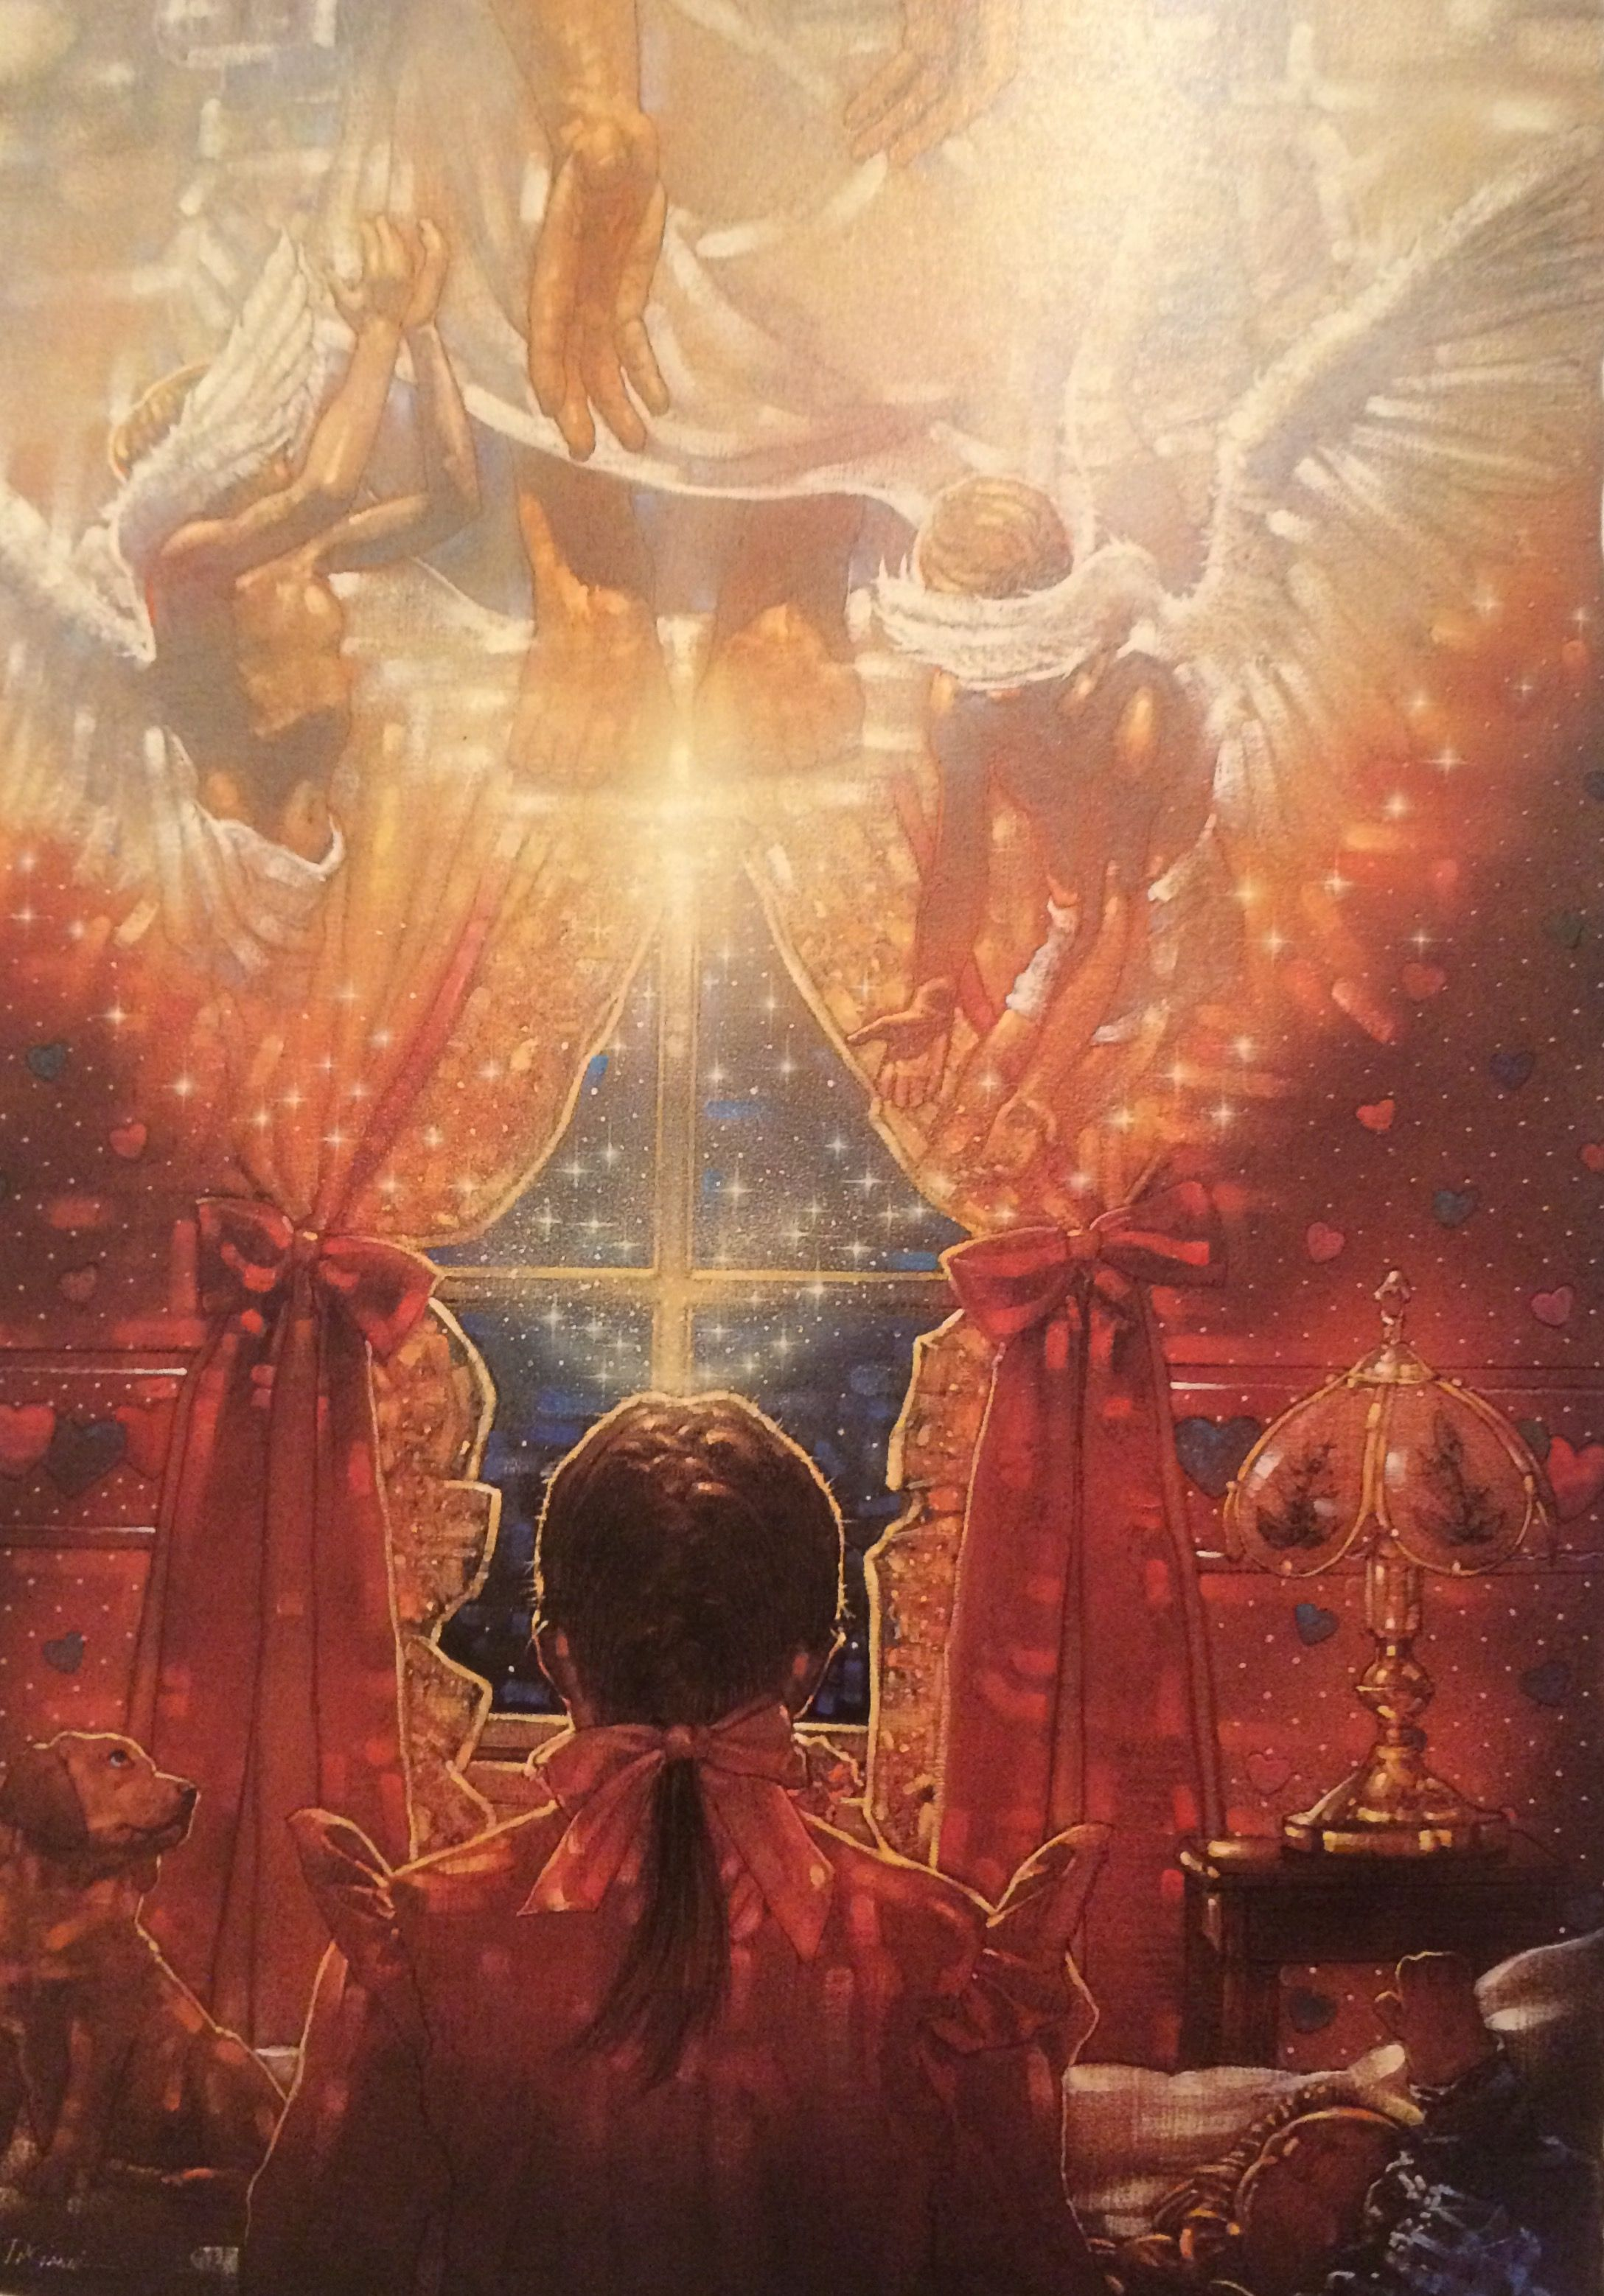 Into His Presence By Ron DiCianni | Spiritual art, Prophetic art, Art